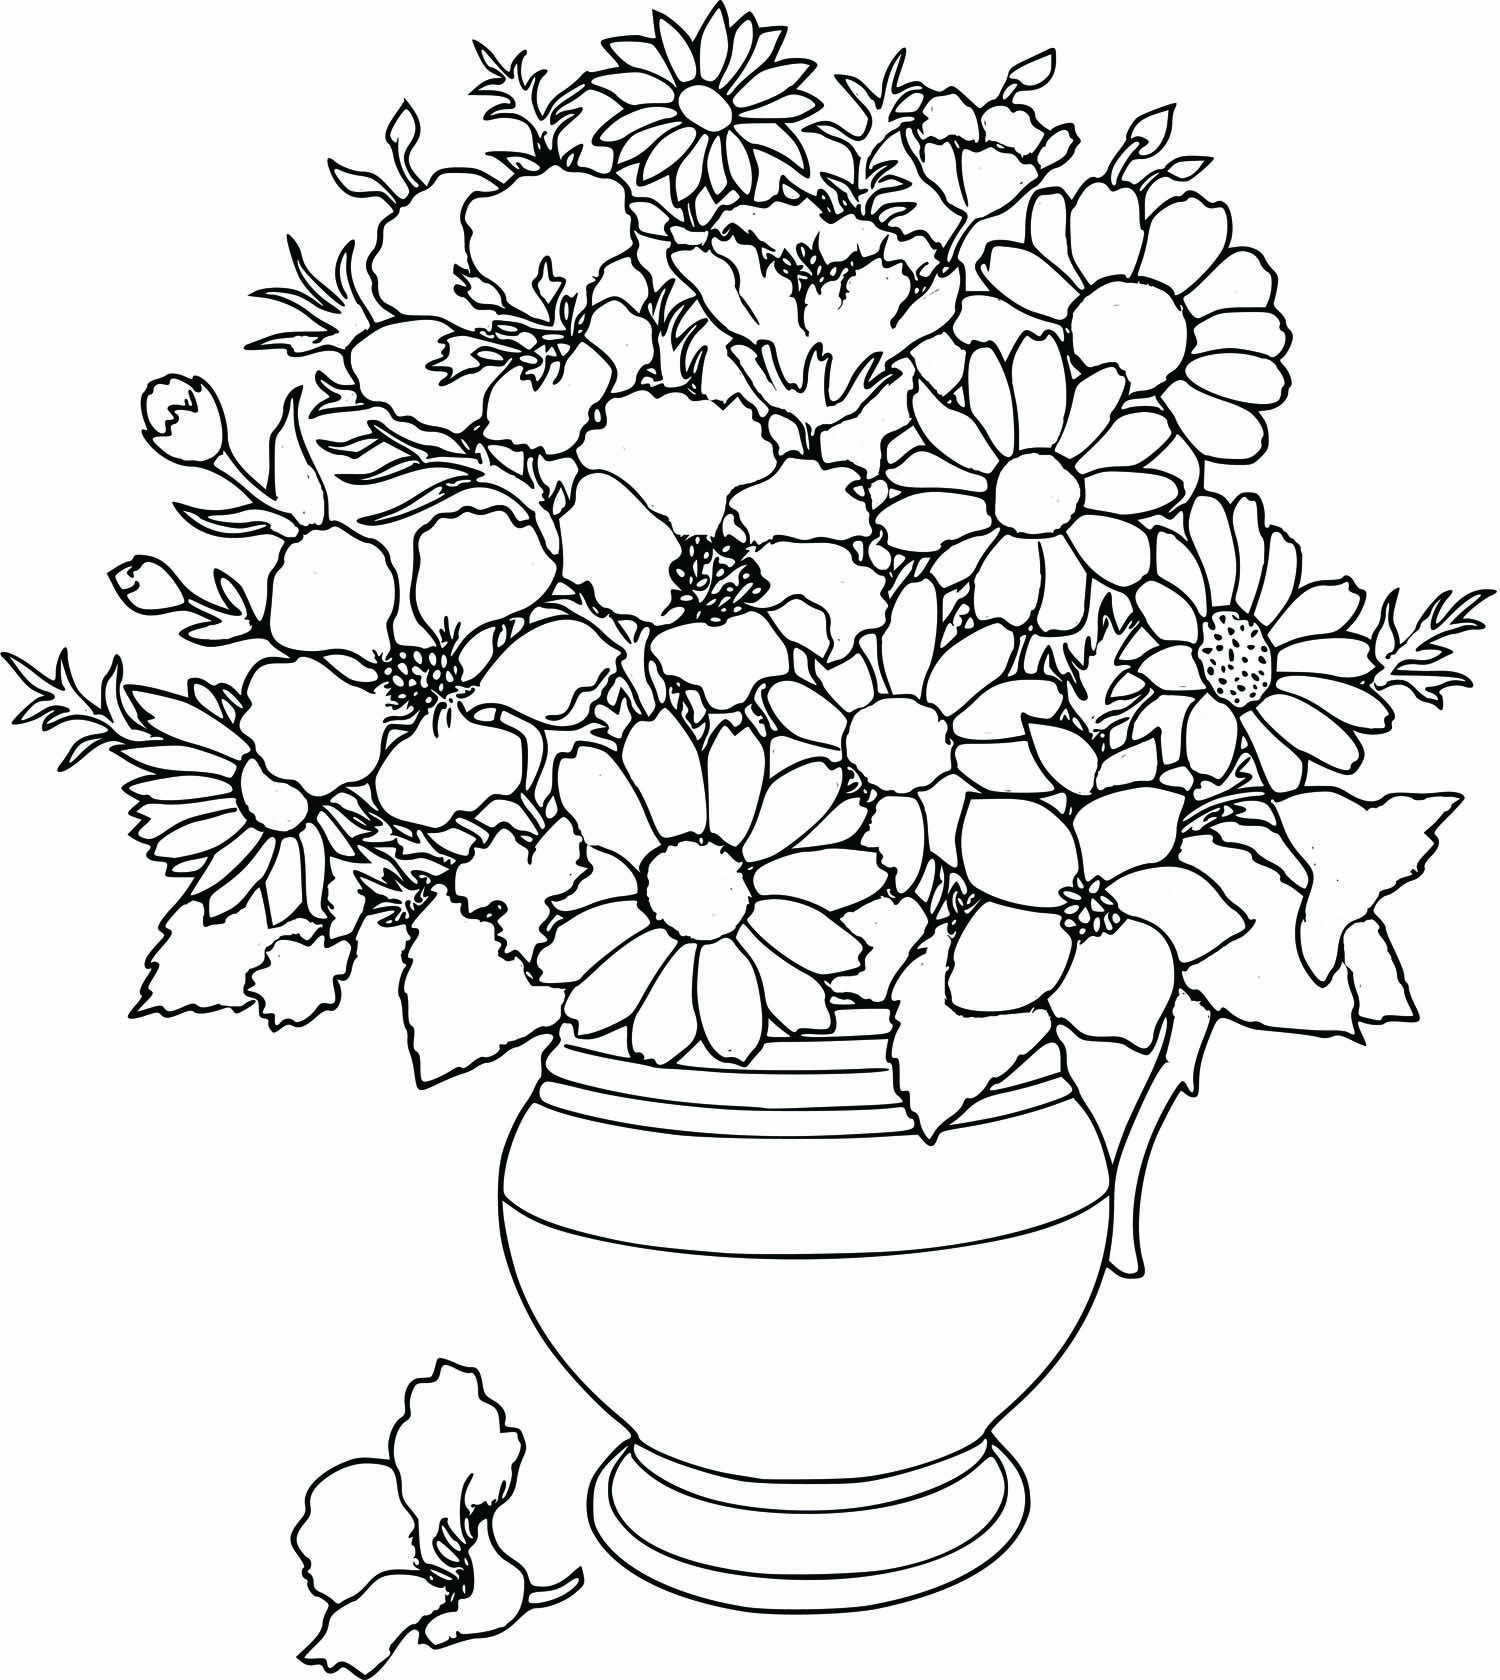 mothers day flowers coloring pages (With images) Flower